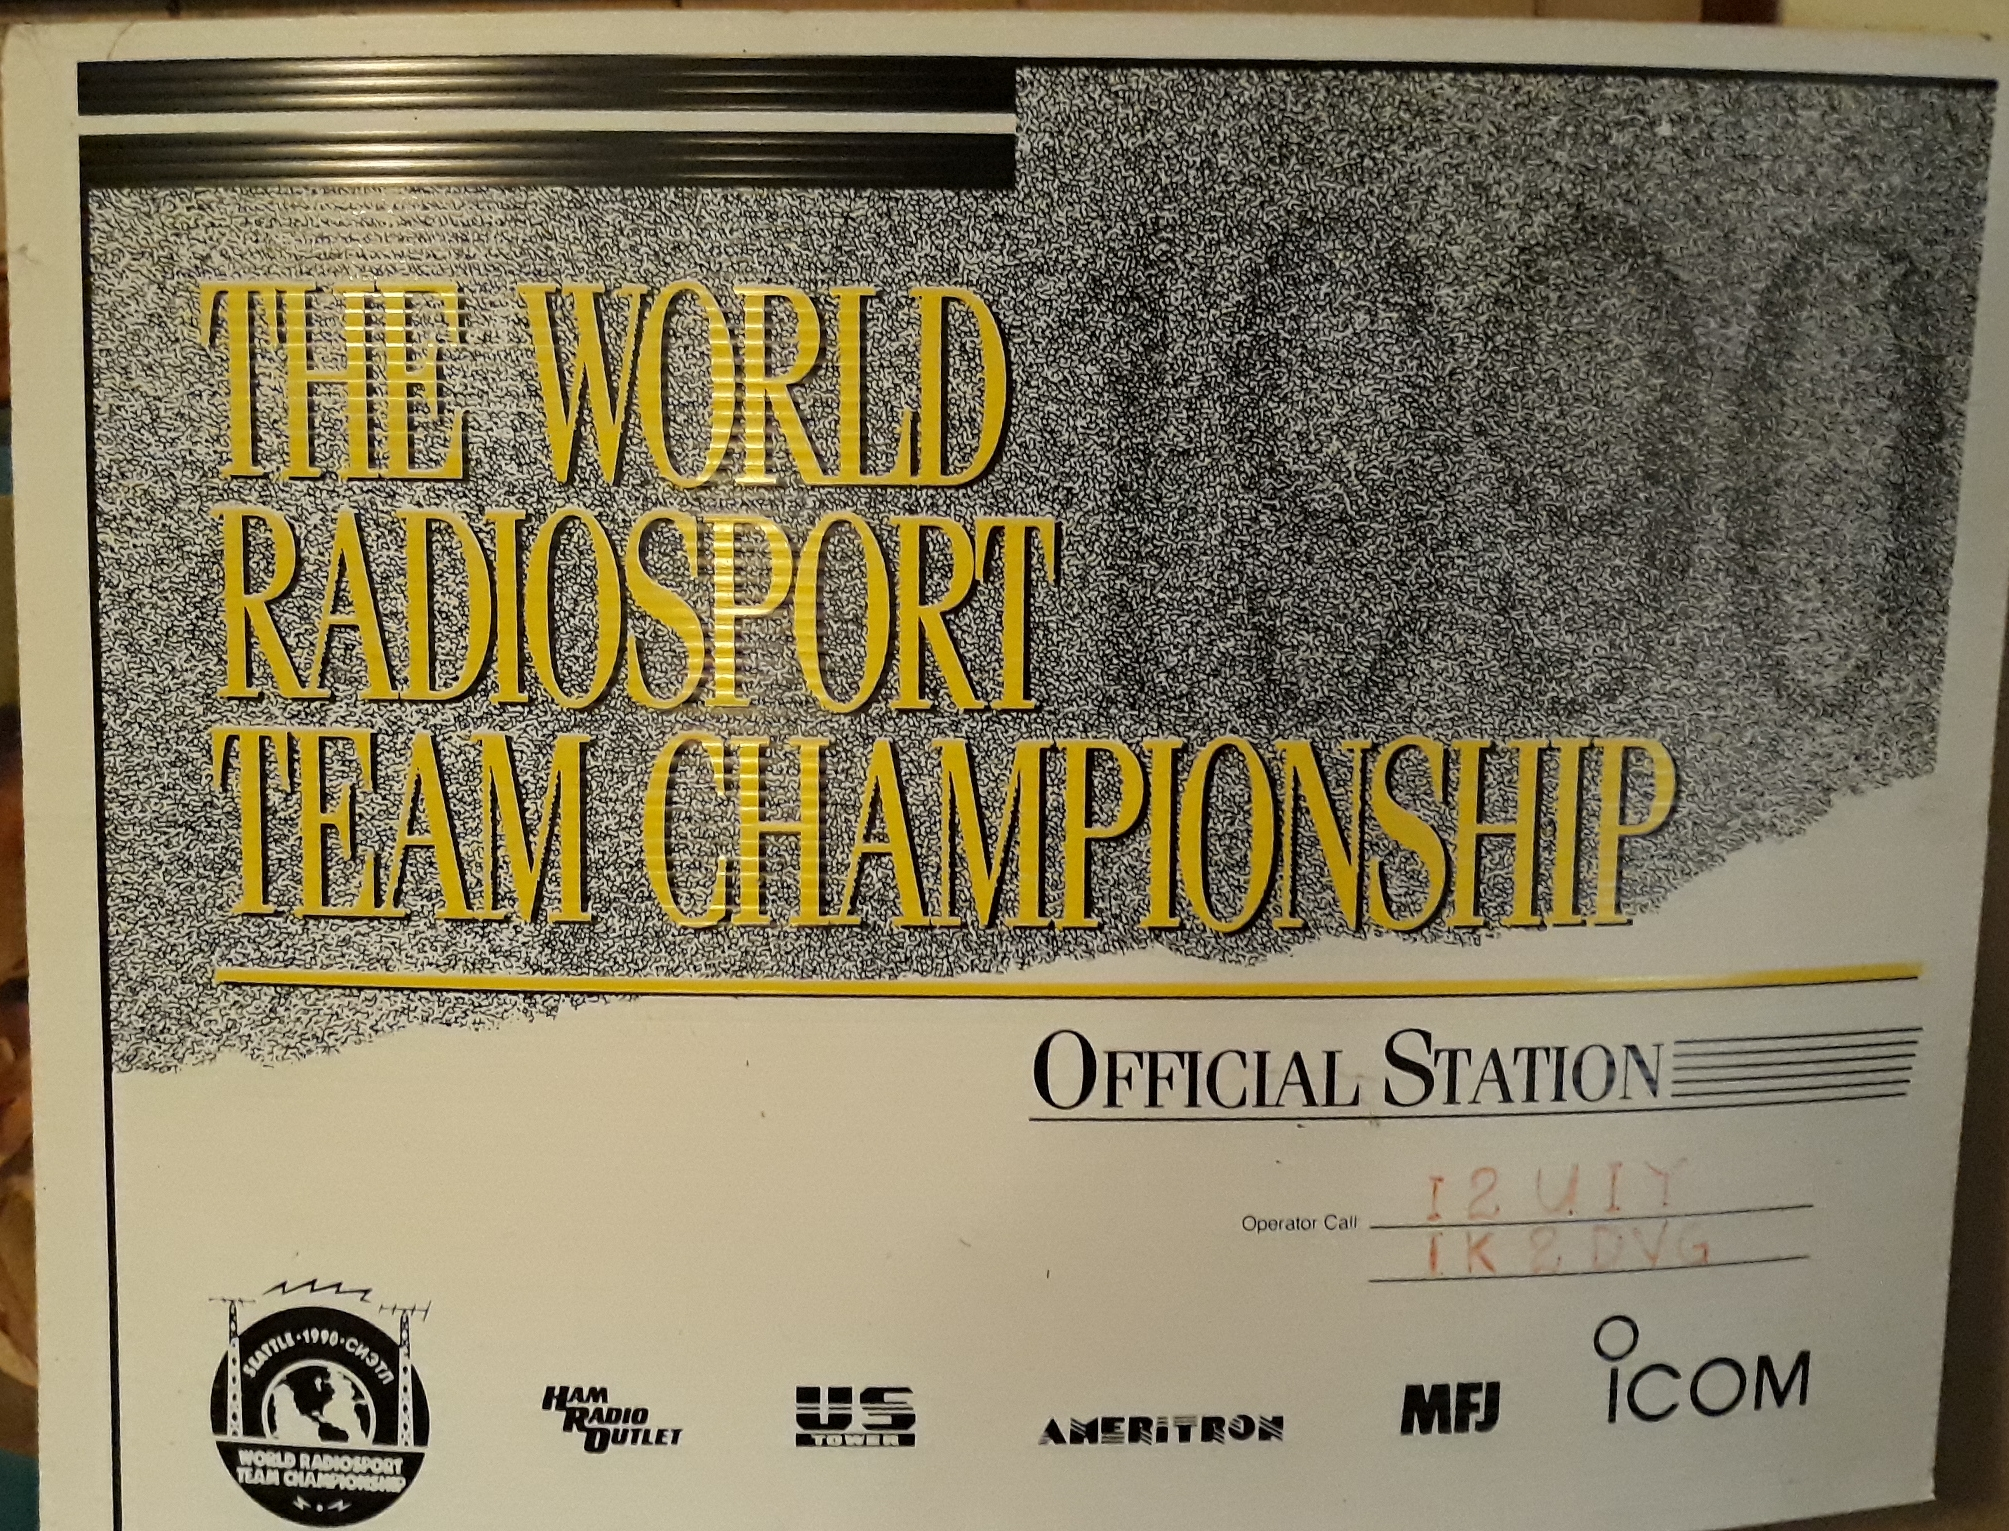 Official Station certificate